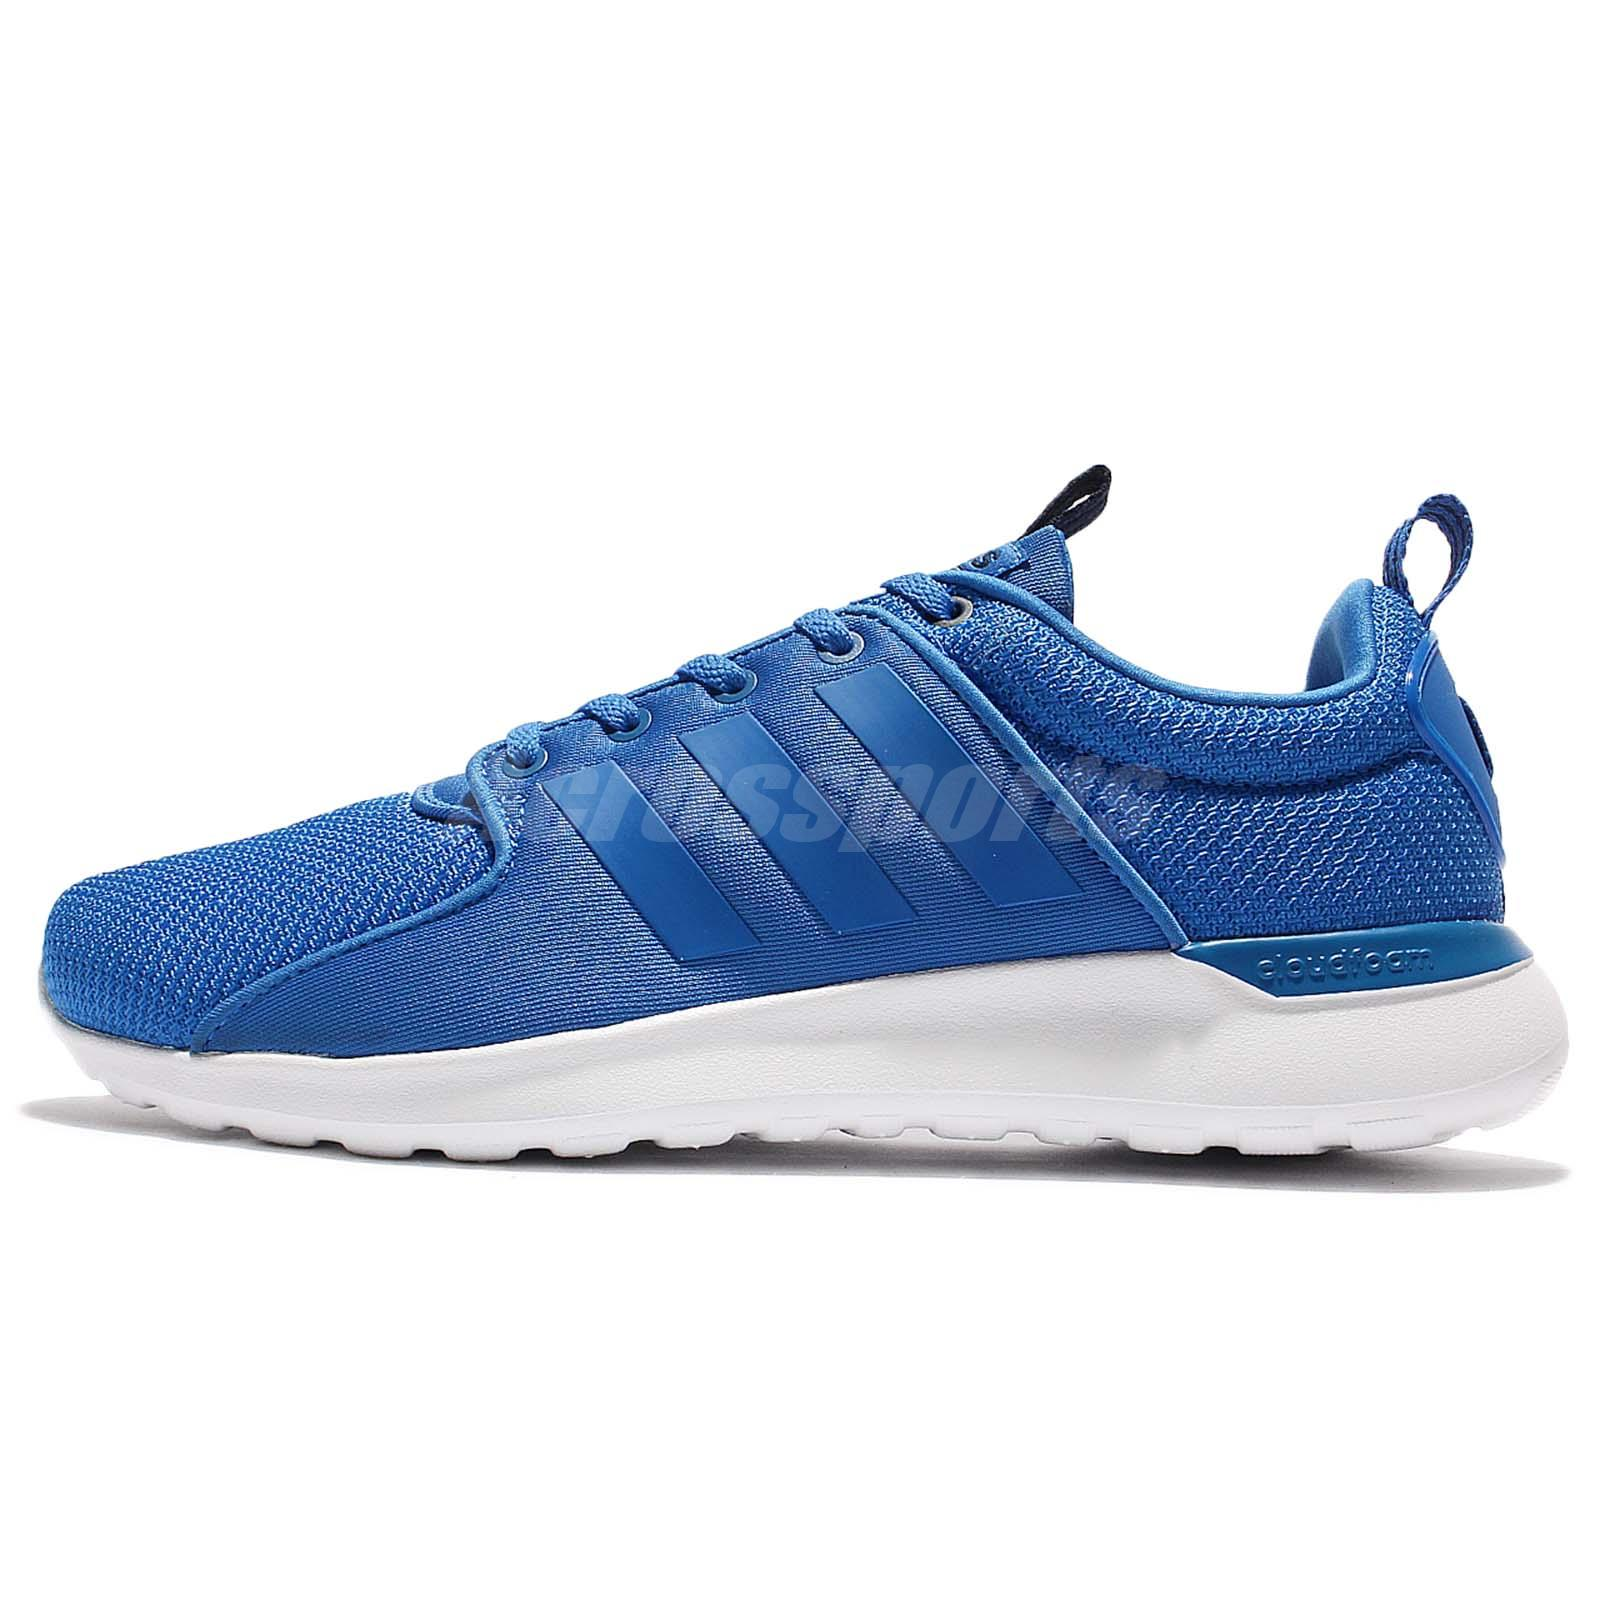 adidas Neo Cloudfoam Lite Racer Blue White Men Running Shoes Sneakers AW4028